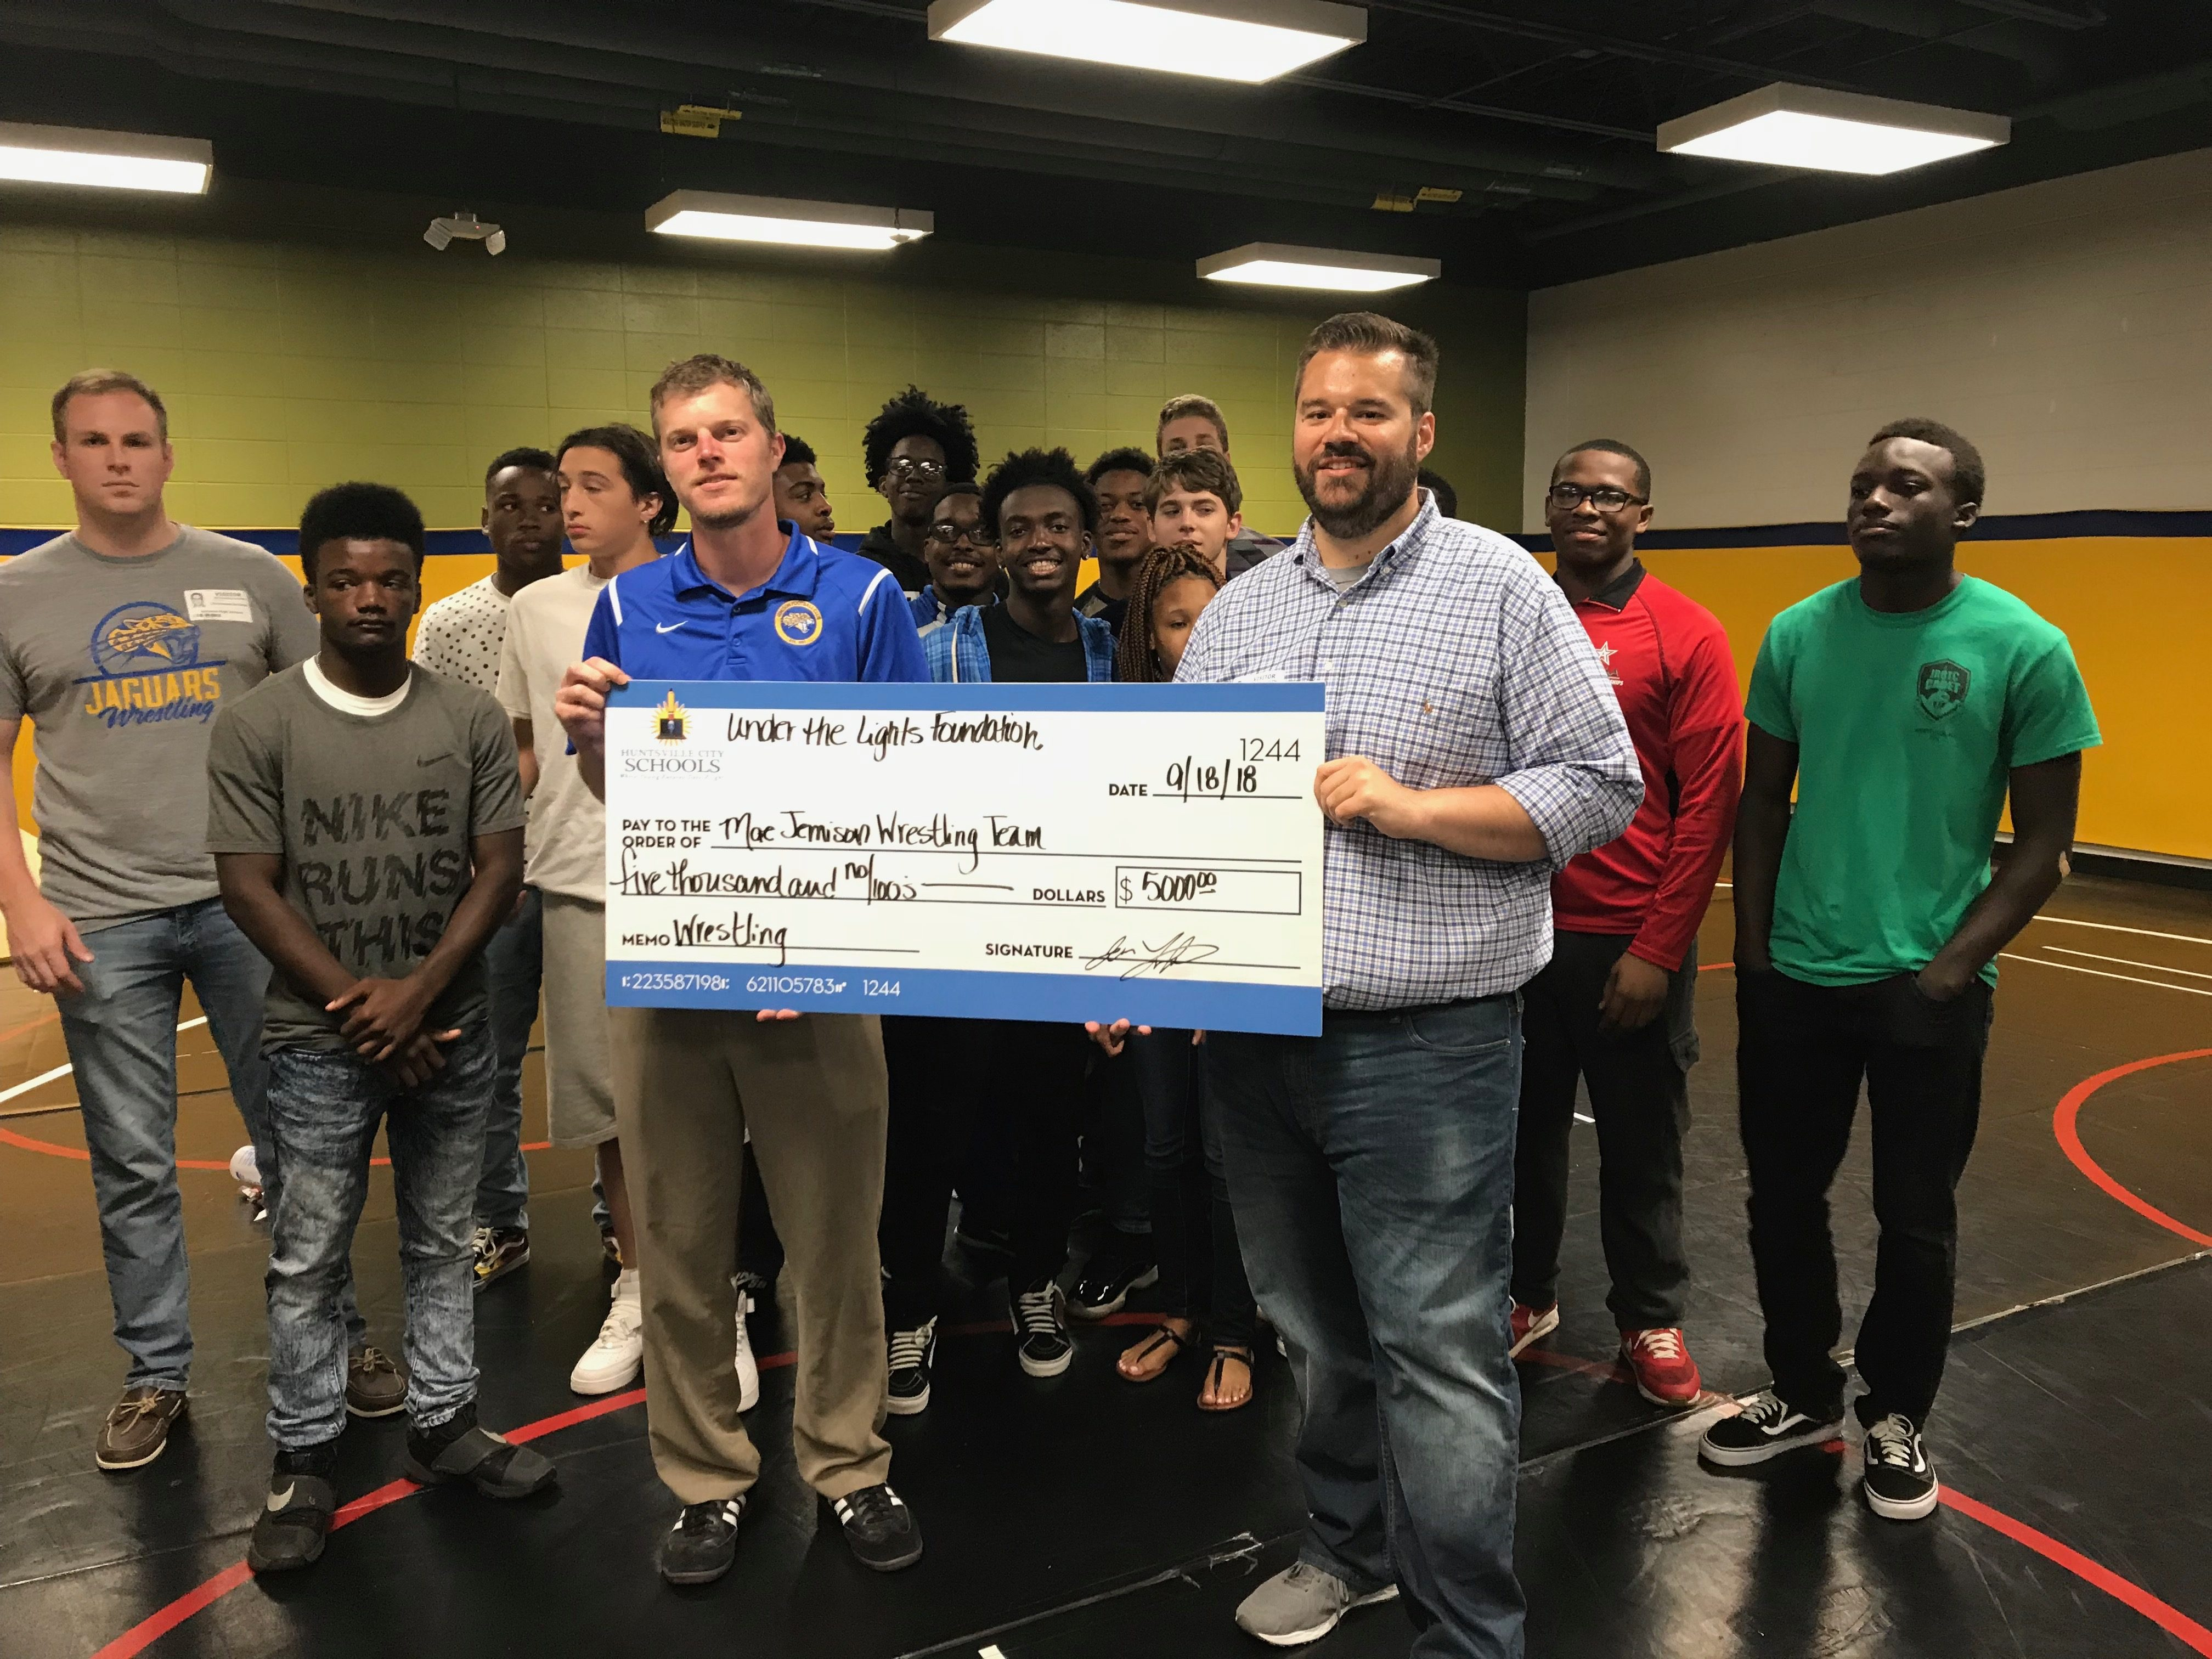 Under the Lights awards first grant to Mae Jemison wrestling team